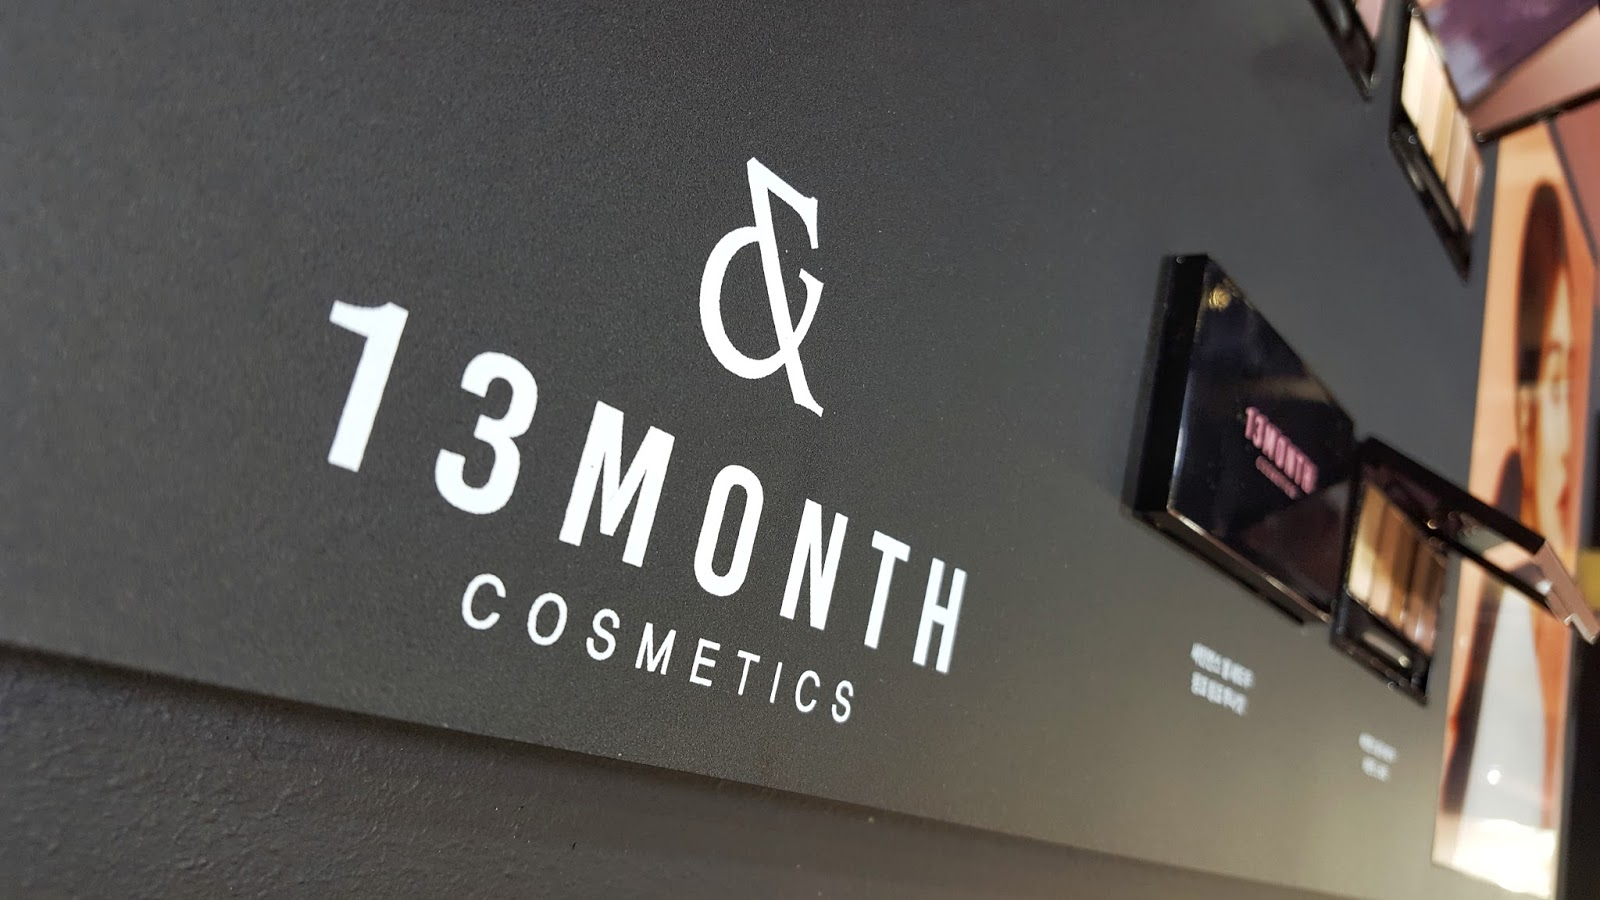 13month Cosmetics: Korean Designer Turned Beauty Brand